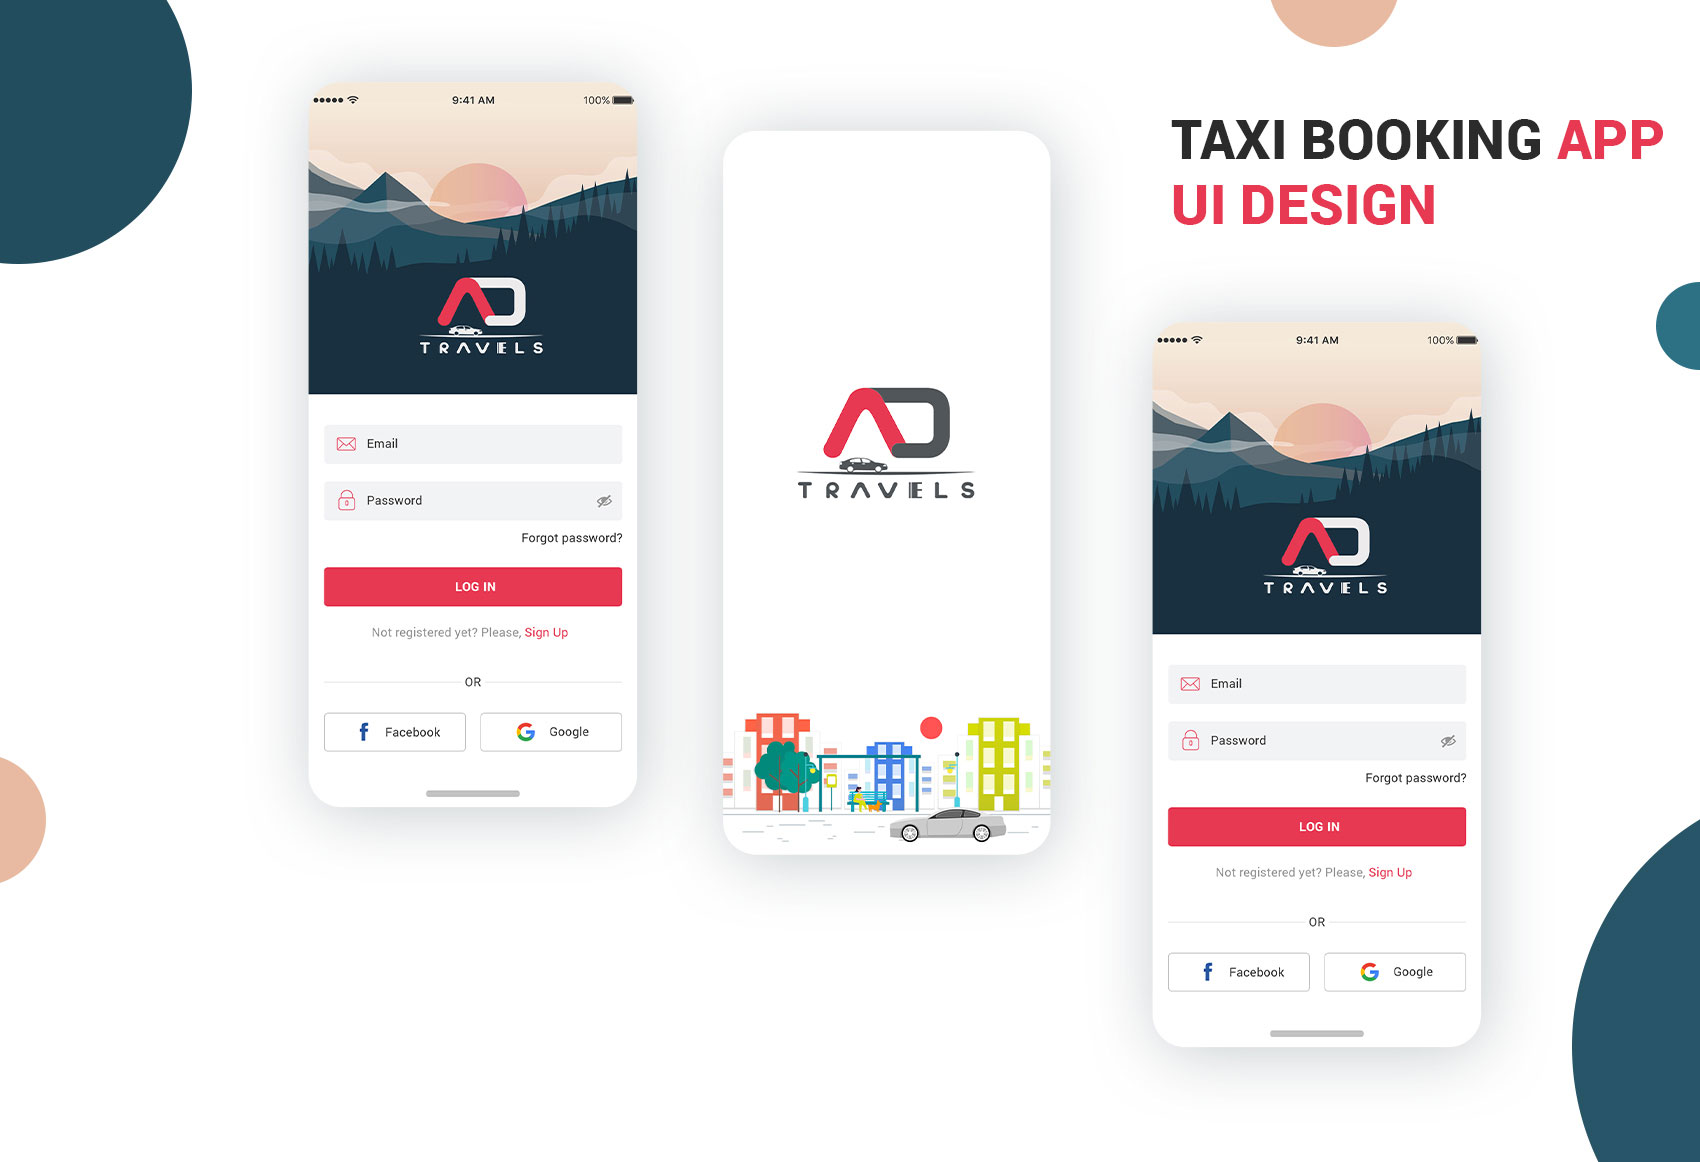 Travel Taxi Booking App Ui design